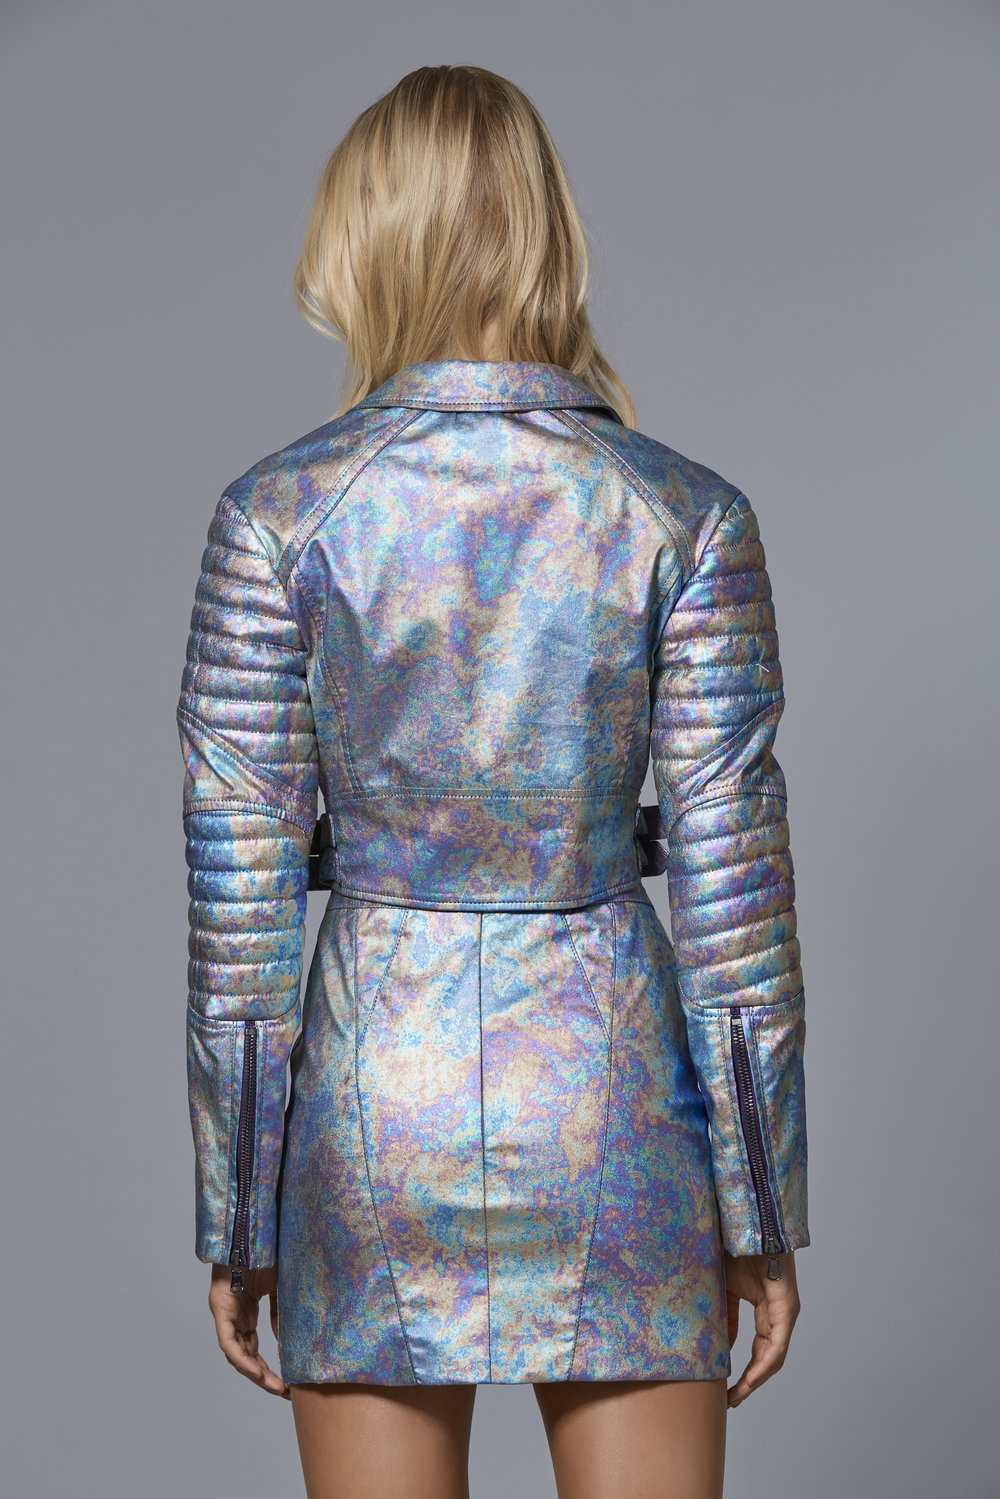 CLAUDIO CINA   LOOK 5: BACK VIEW  Metallic Vegan Leather Biker Jacket  Metallic Vegan Leather Mini Skirt